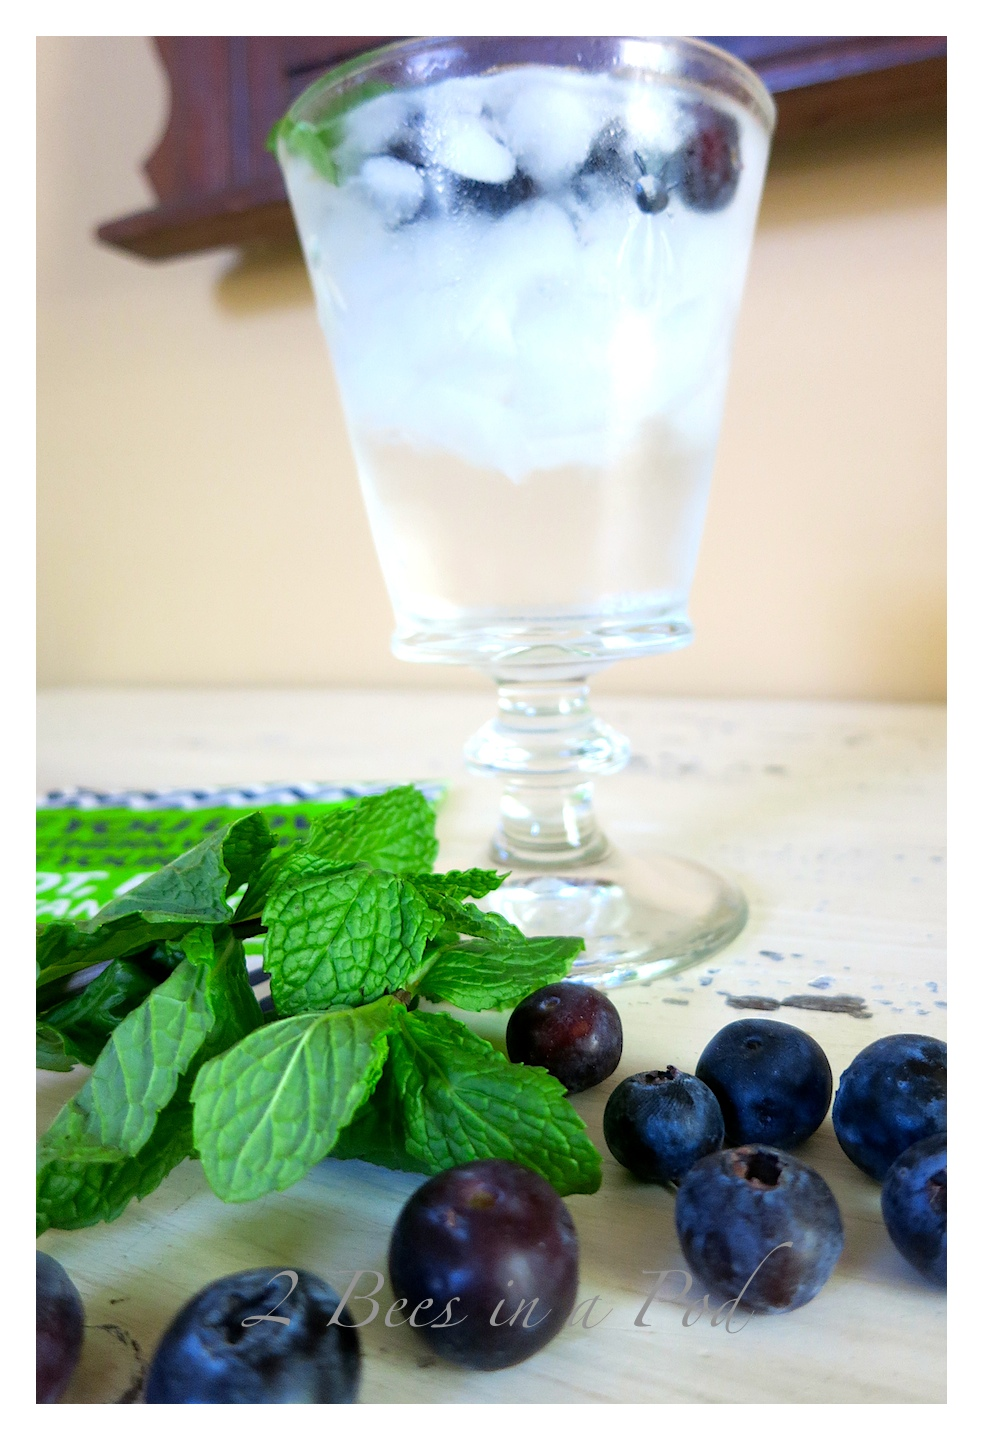 Summer Blue Cocktail - light, refreshing blueberry flavor. Low in calories - high in taste. One ounce of Stolichnaya Blueberry infused vodka and club soda.